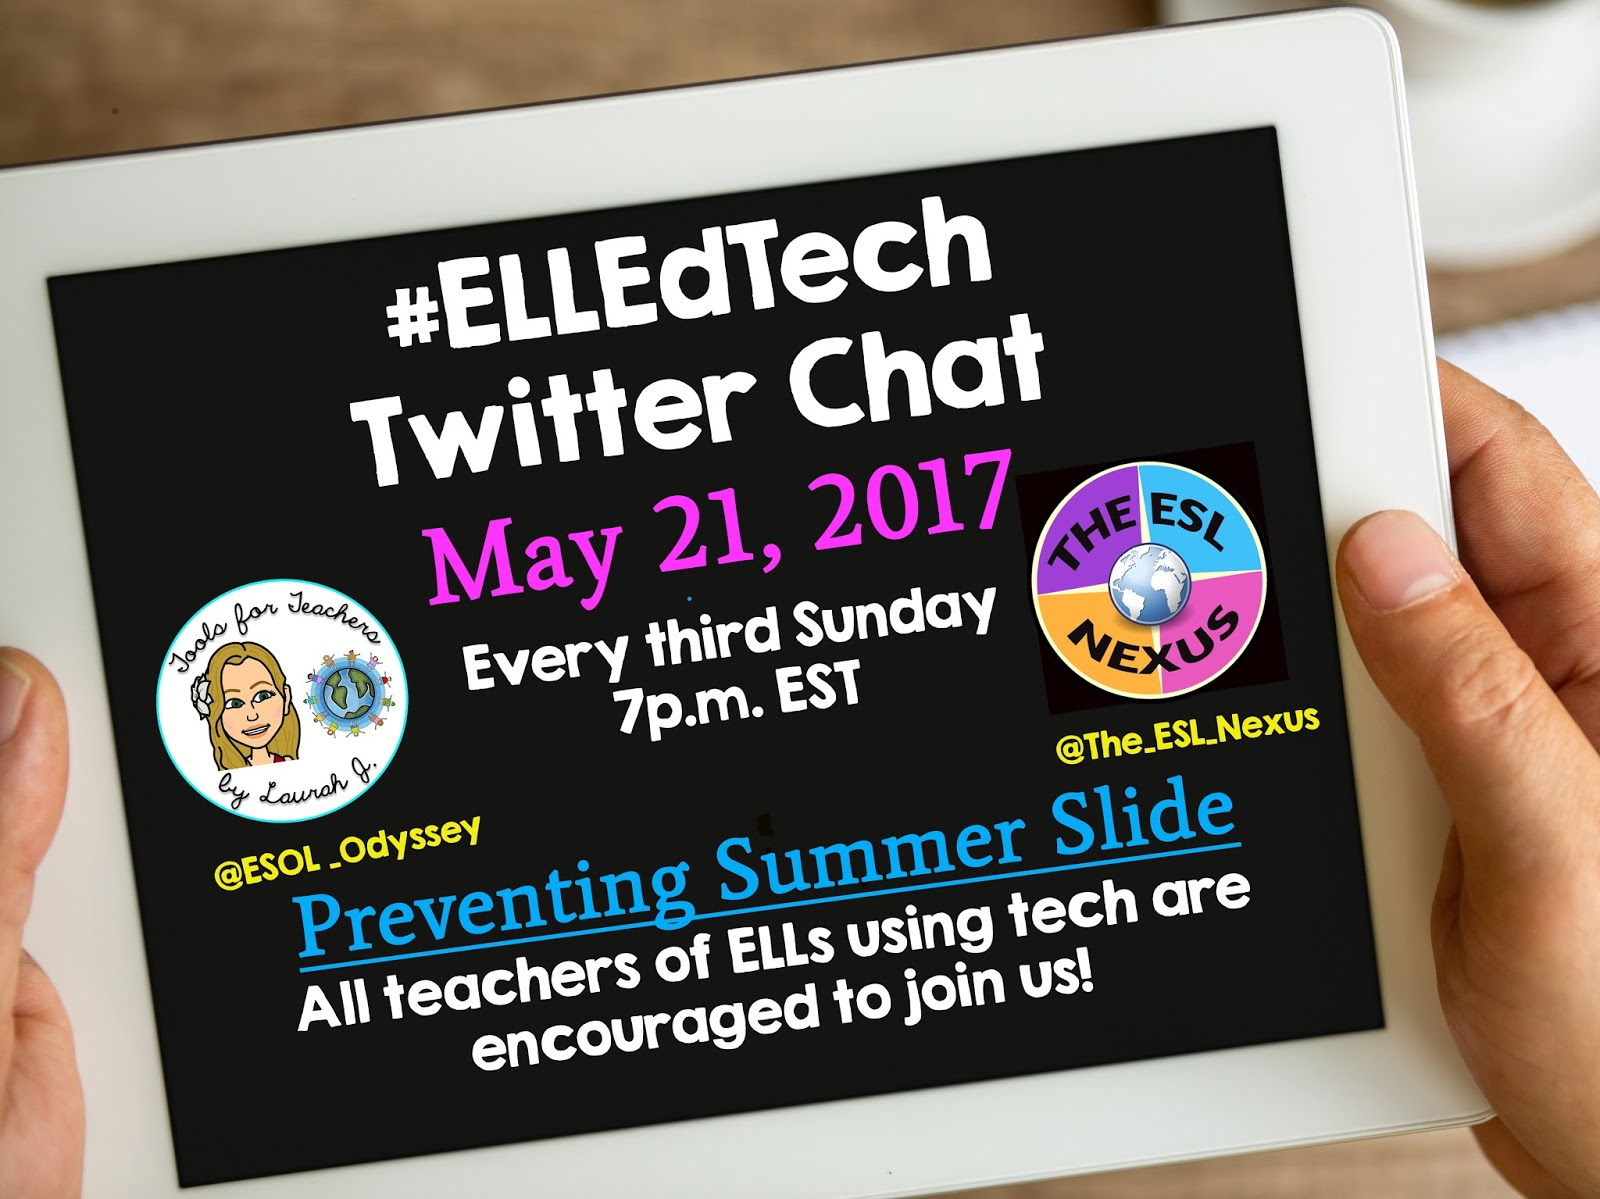 Join the #ELEdTech Twitter chat on Sunday, May 21, 2107 to discuss using tech tools to prevent summer slide in ELLs.